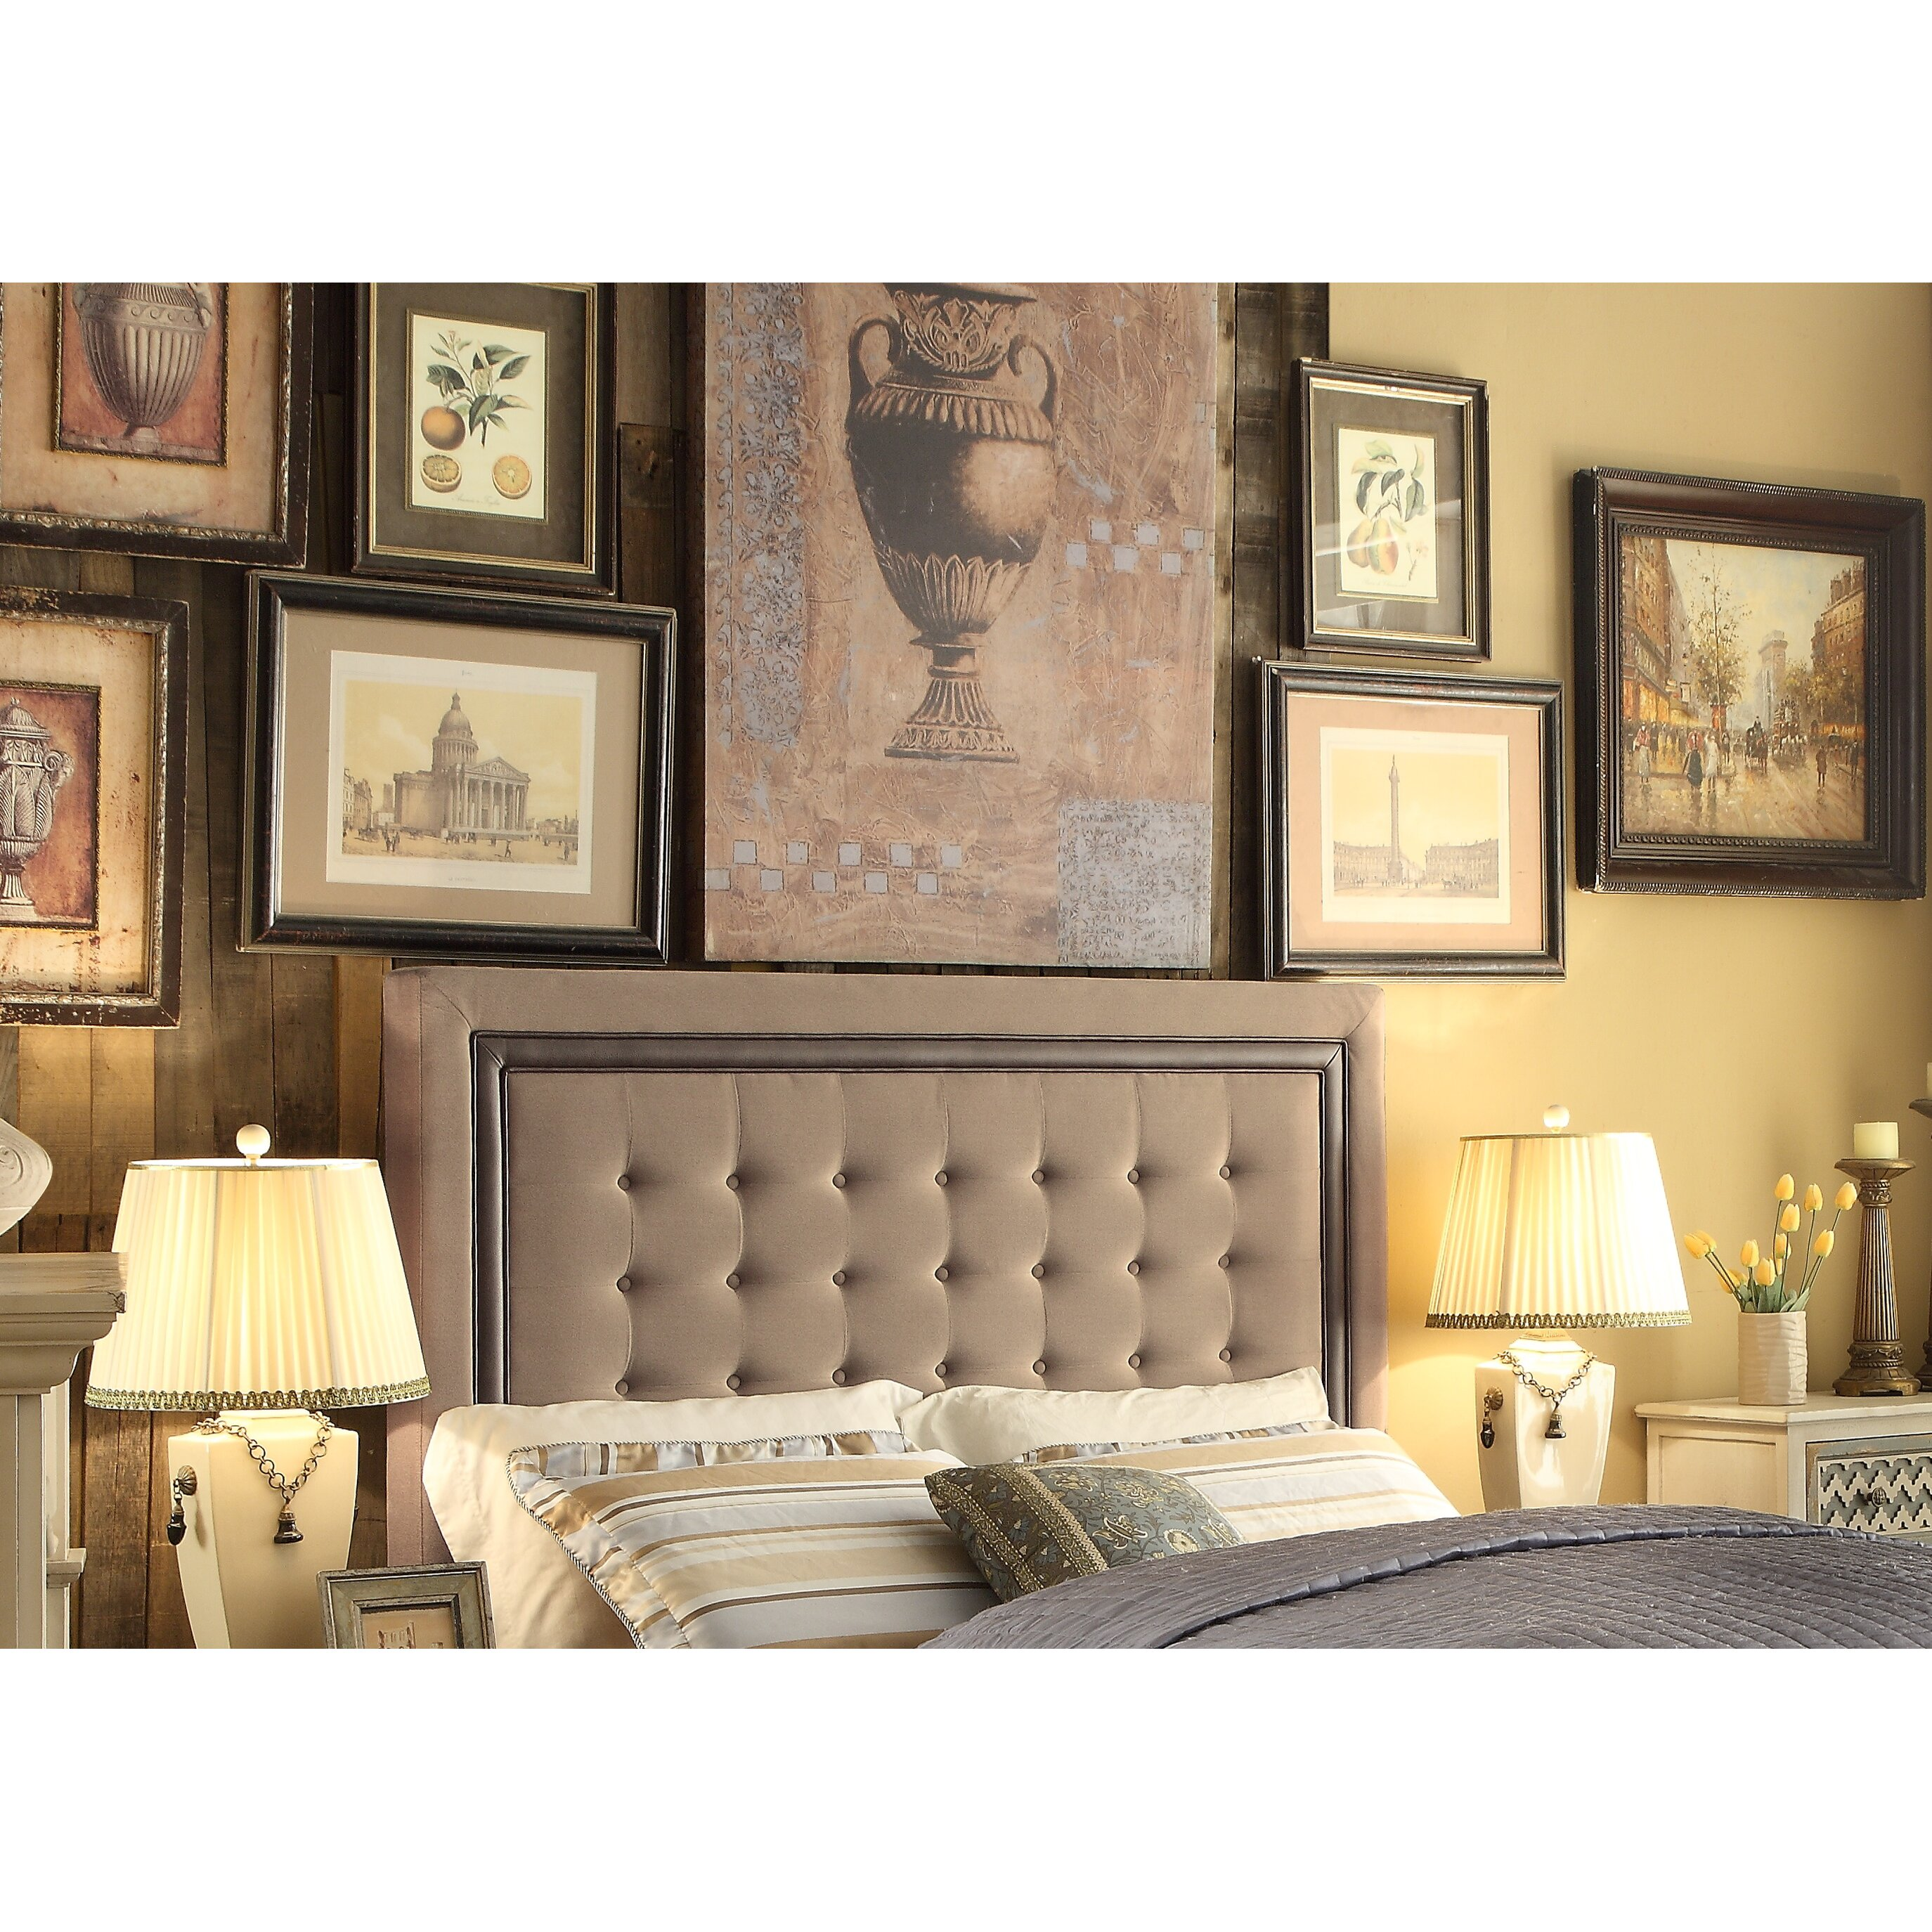 Mulhouse furniture hidalgo queen upholstery panel - Boutique free mulhouse ...